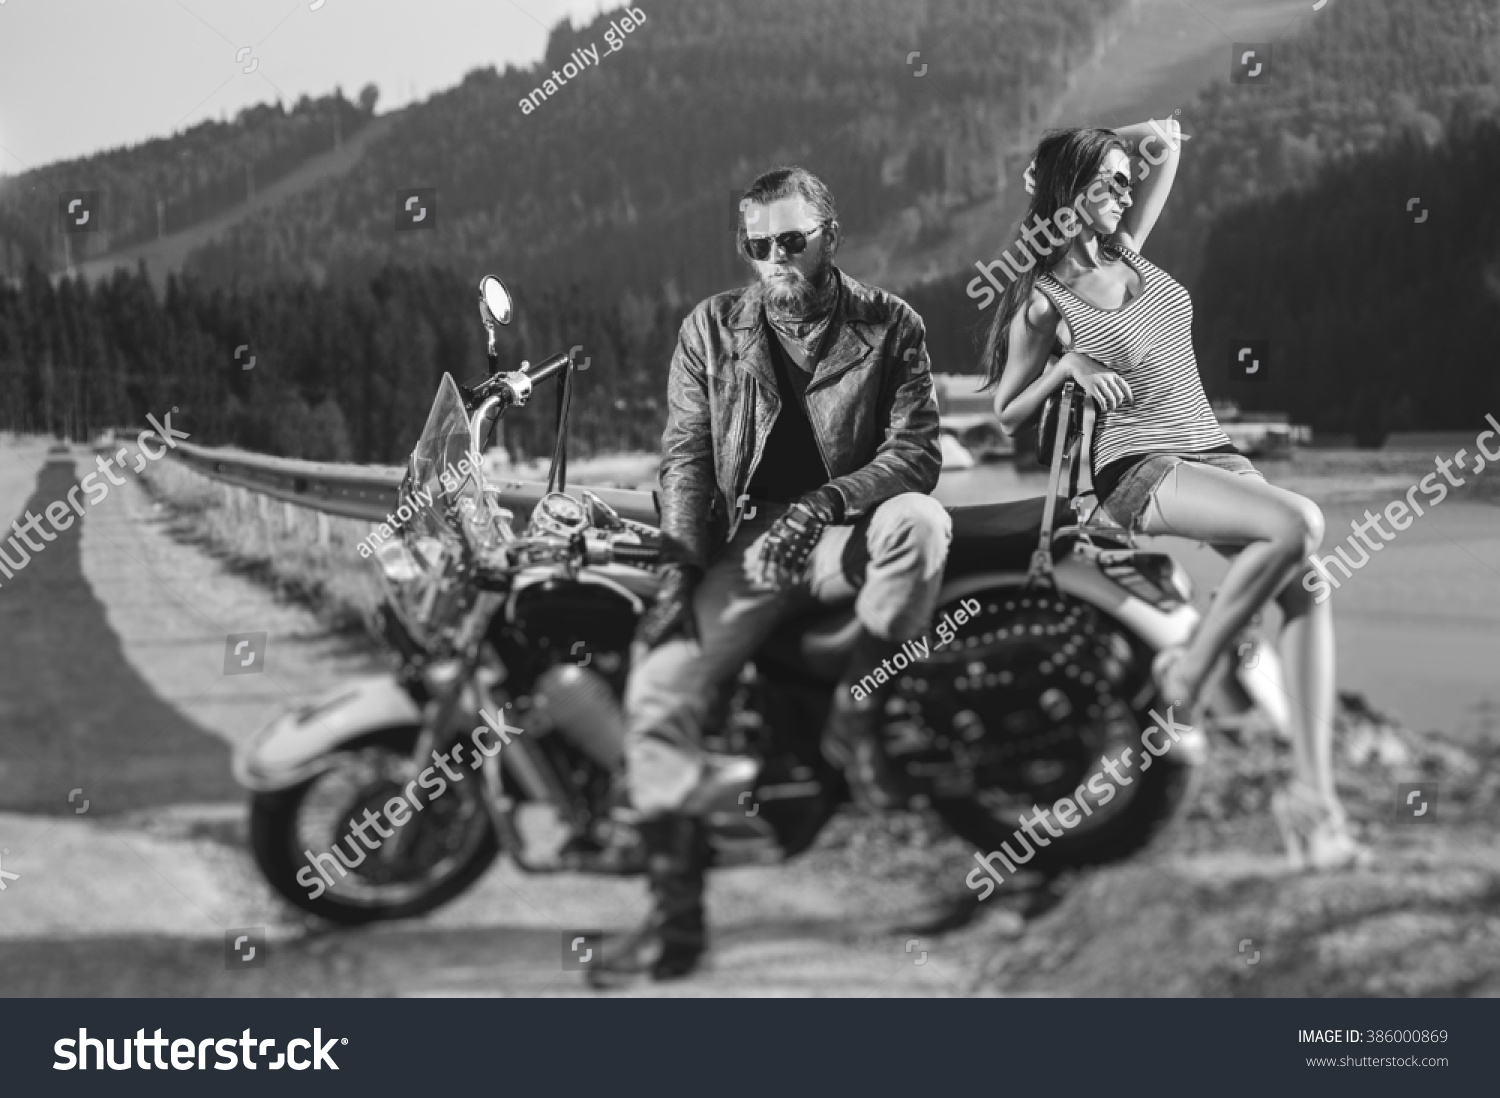 Motorcycle gloves victoria bc - Couple Sitting On A Motorbike Handsome Man Wearing Leather Jacket Gloves And Boots And